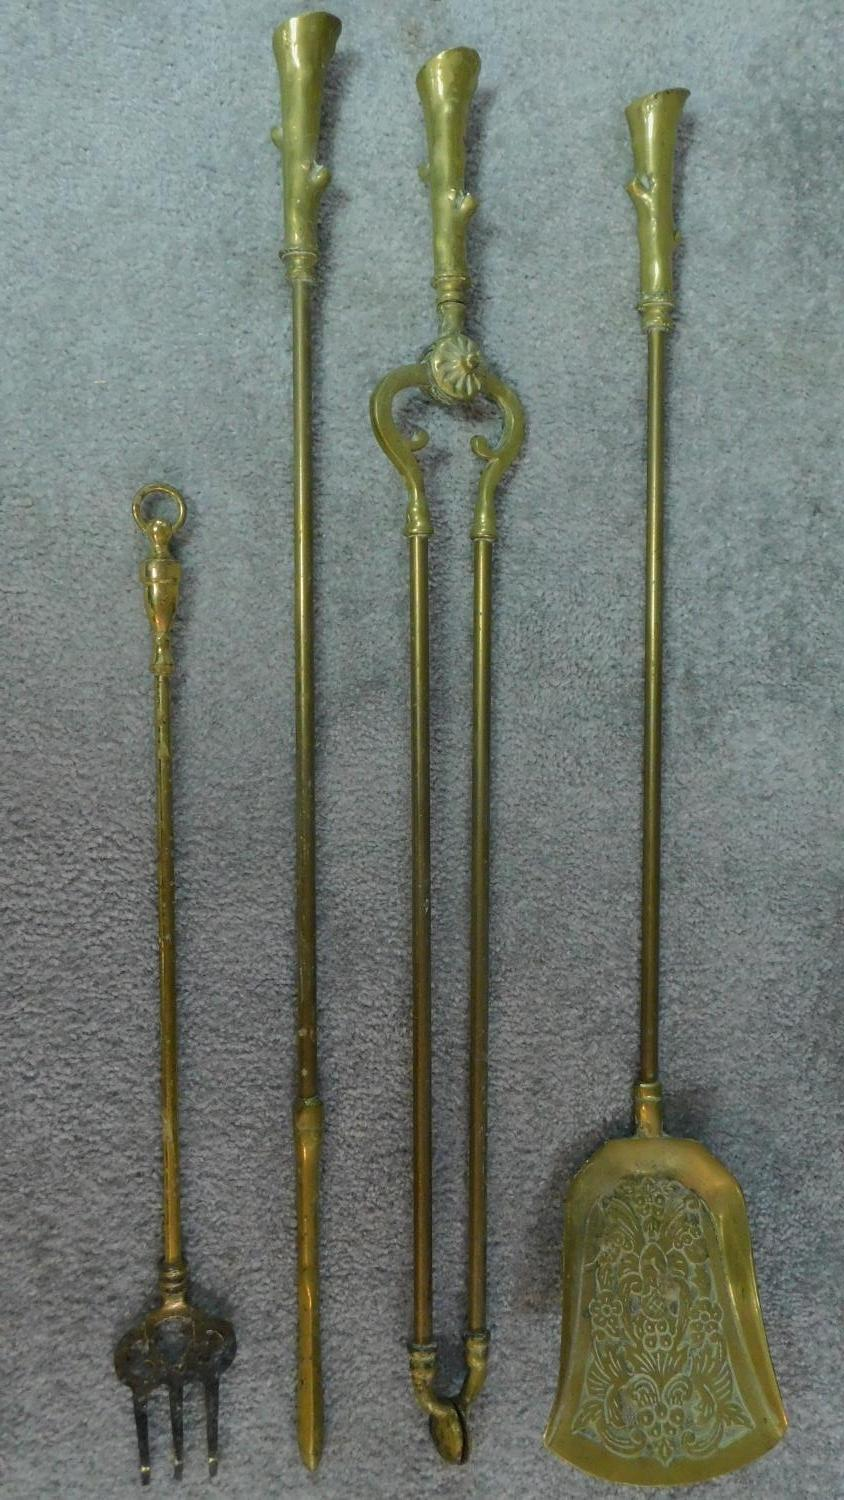 A set of 19th century brass fire implements and the matching andirons and a three section fireguard. - Image 3 of 6